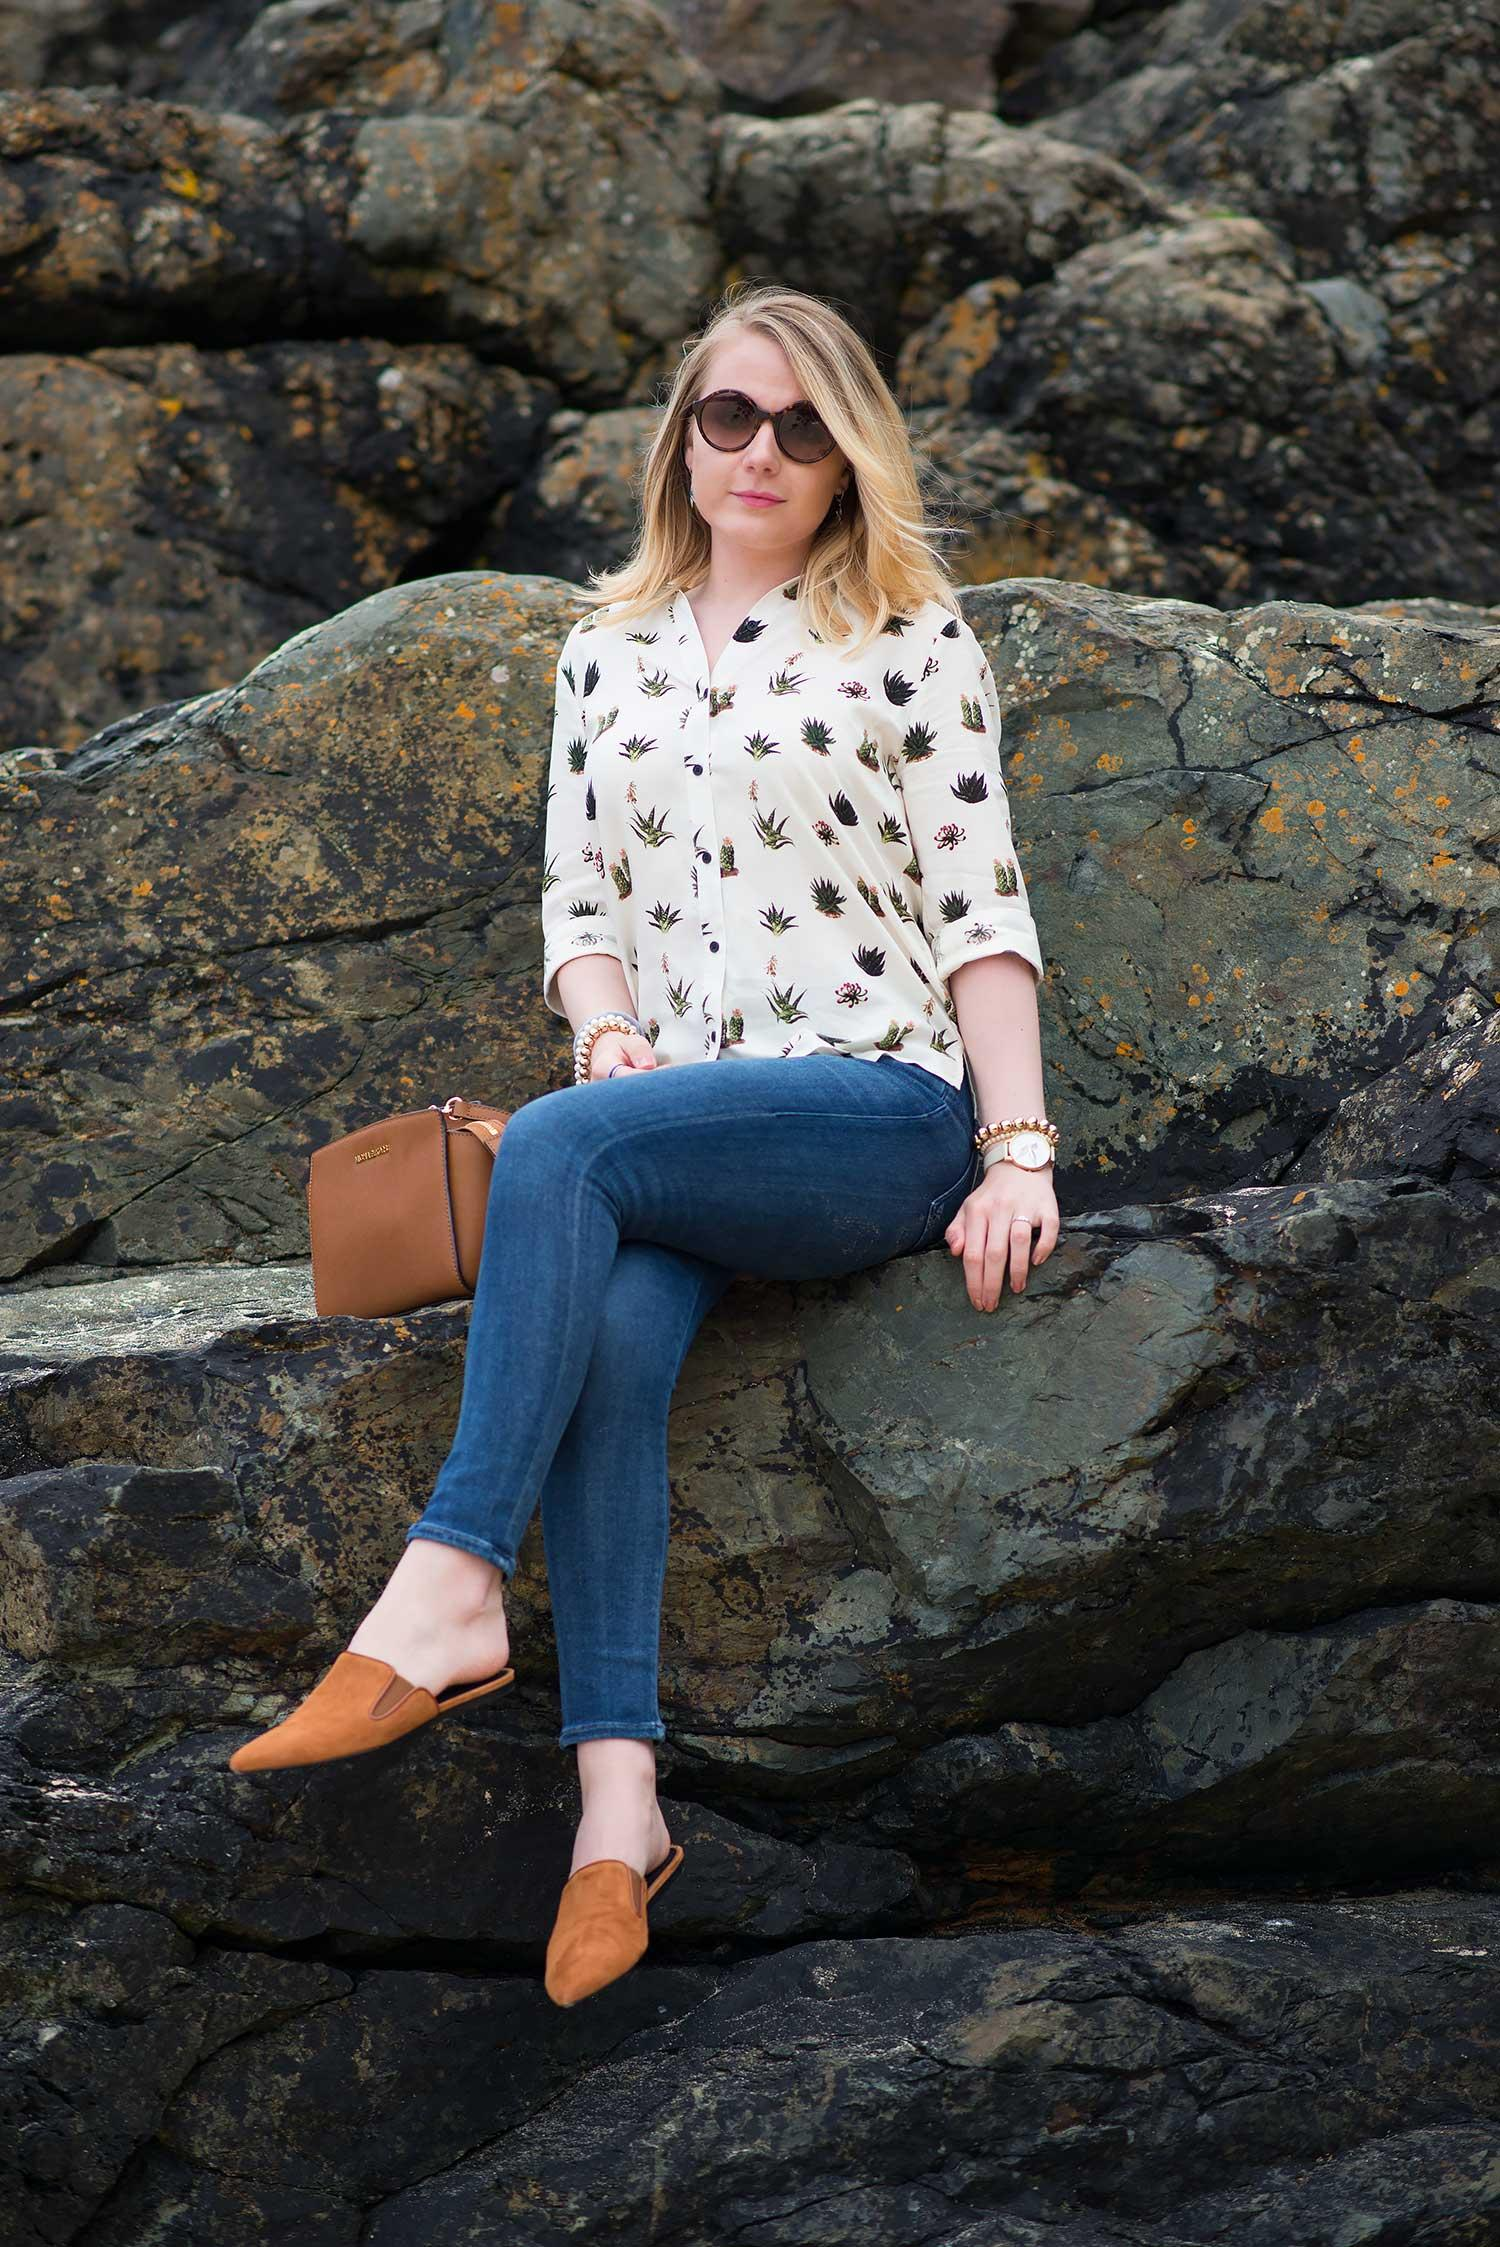 lorna-burford-sat-on-rocks